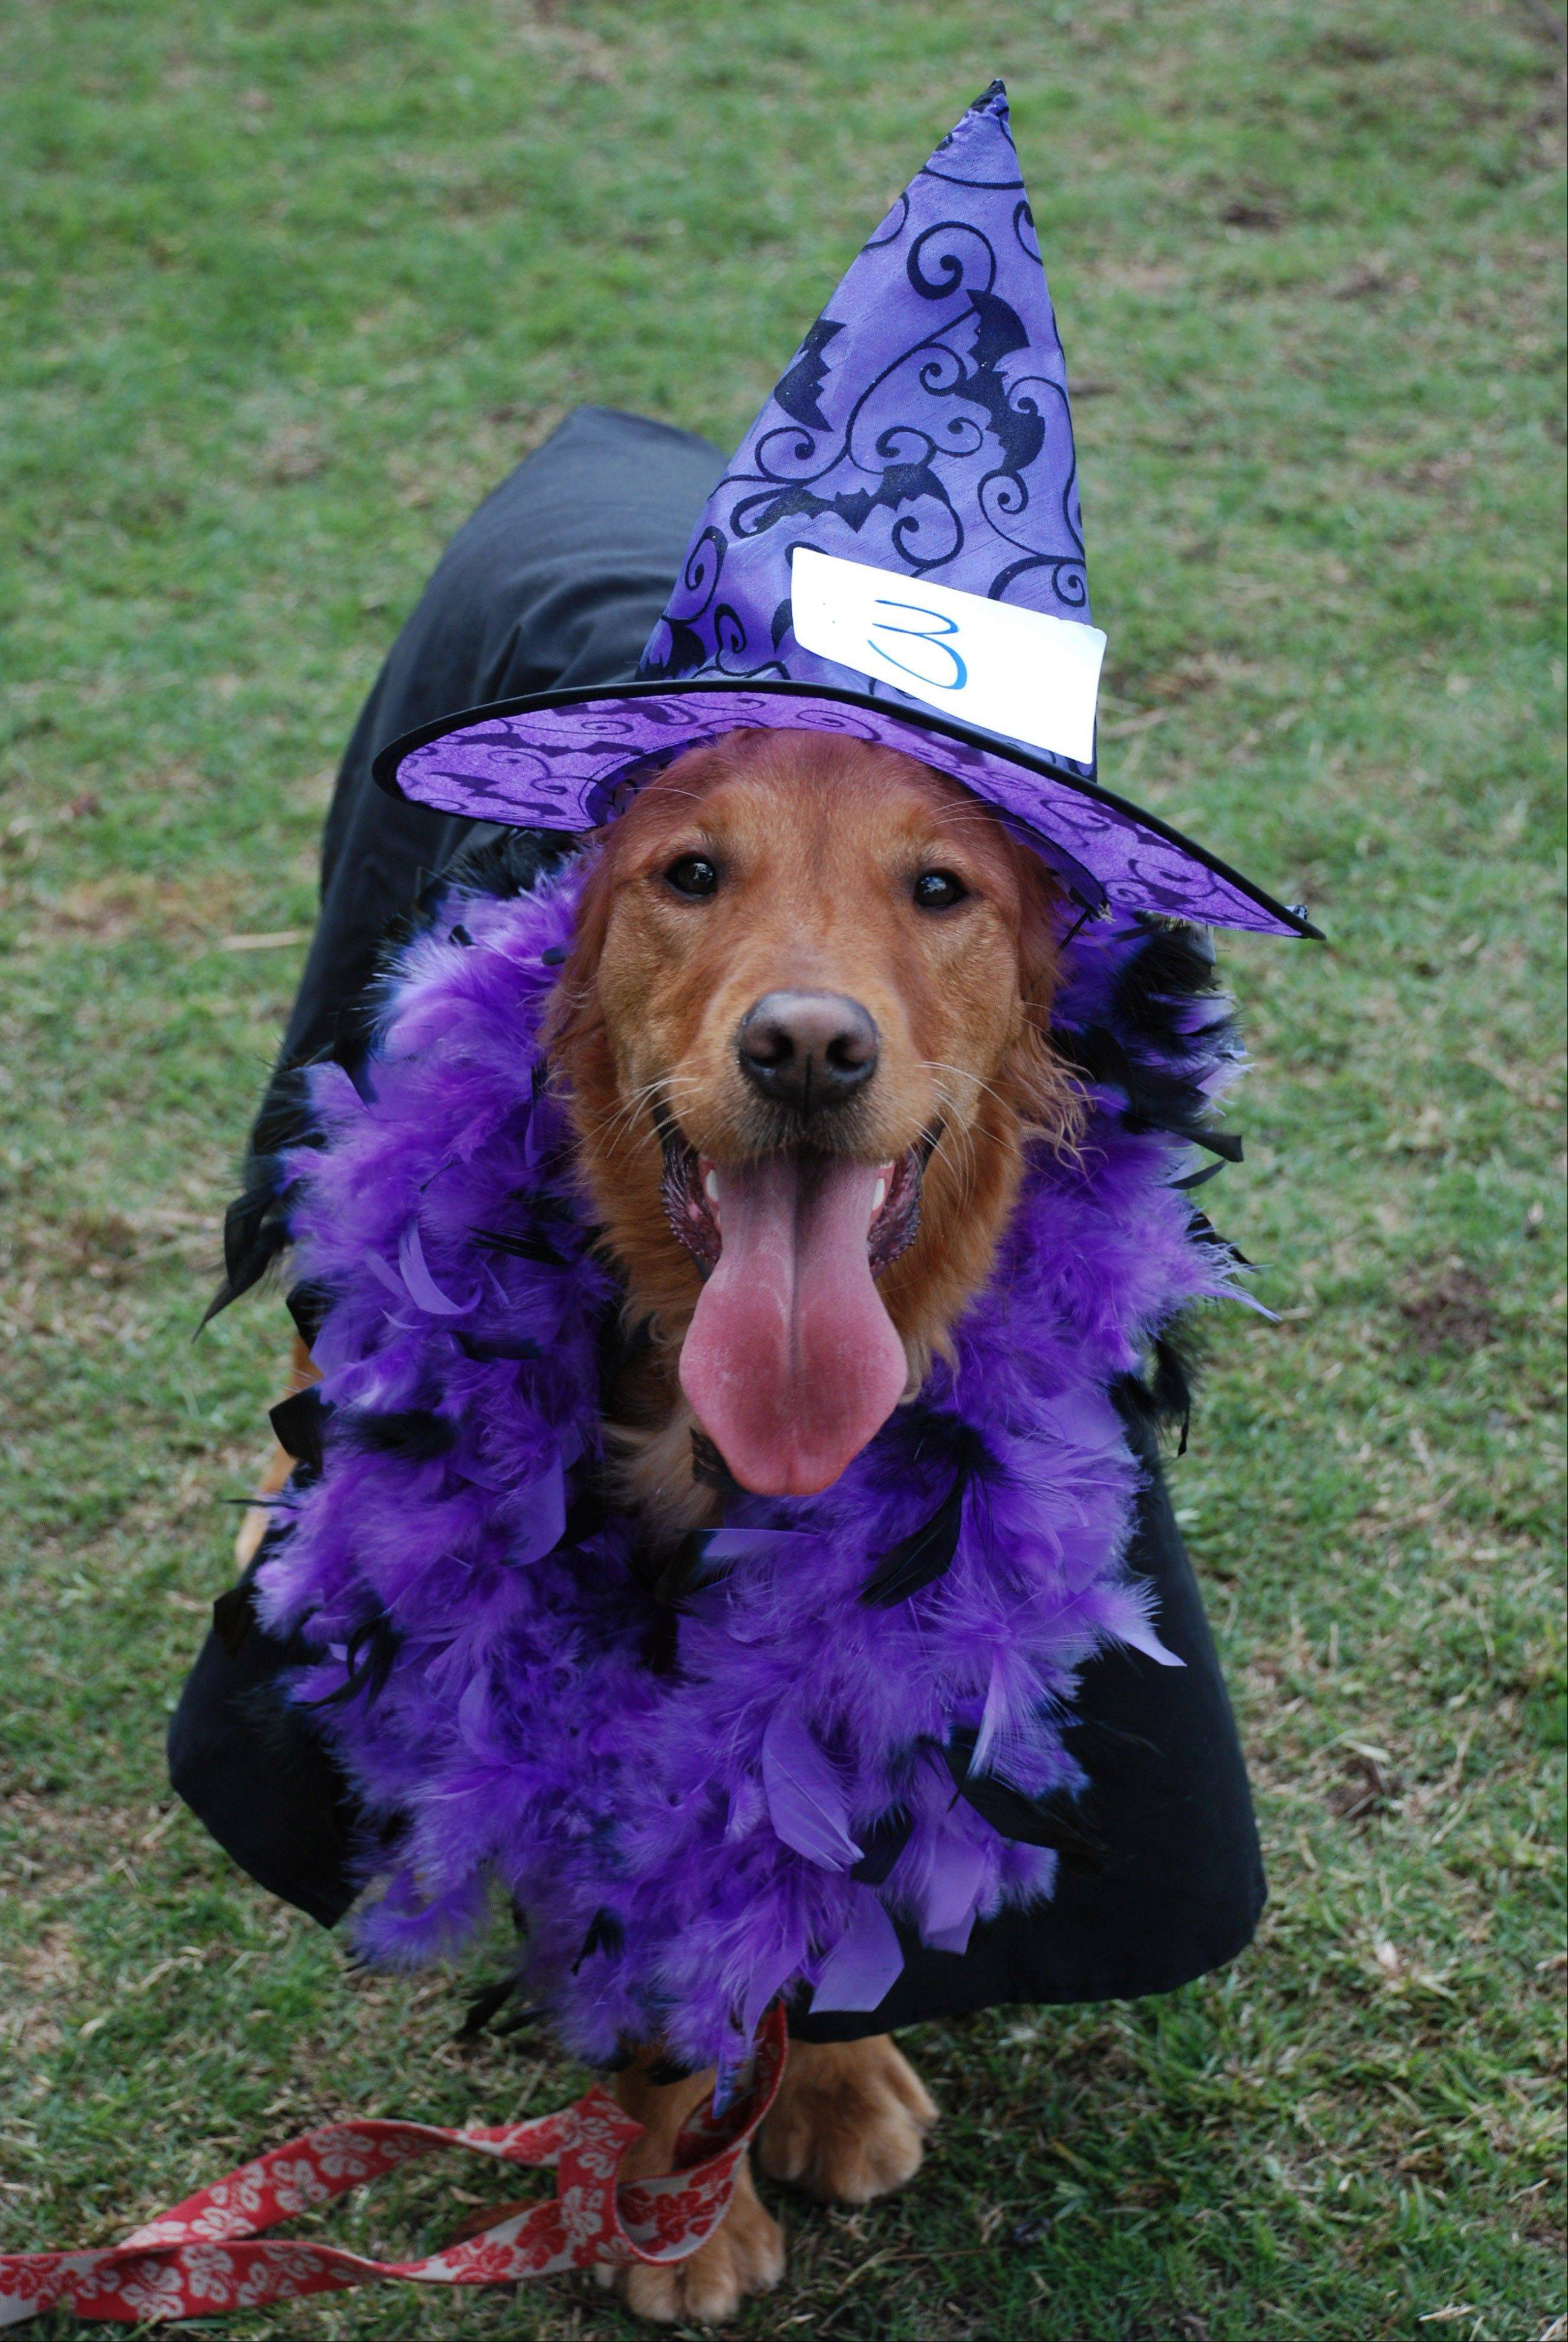 This Oct. 31, 2010 image provided by Sue Subkow shows Andra Lew's golden retriever, Kalani, dressed as a witch at the San Diego Golden Retriever Meetup Group's Halloween Pooch Party in San Diego, Calif. As Halloween has grown in popularity across the country, real party animals have been a big part of it, experts say.